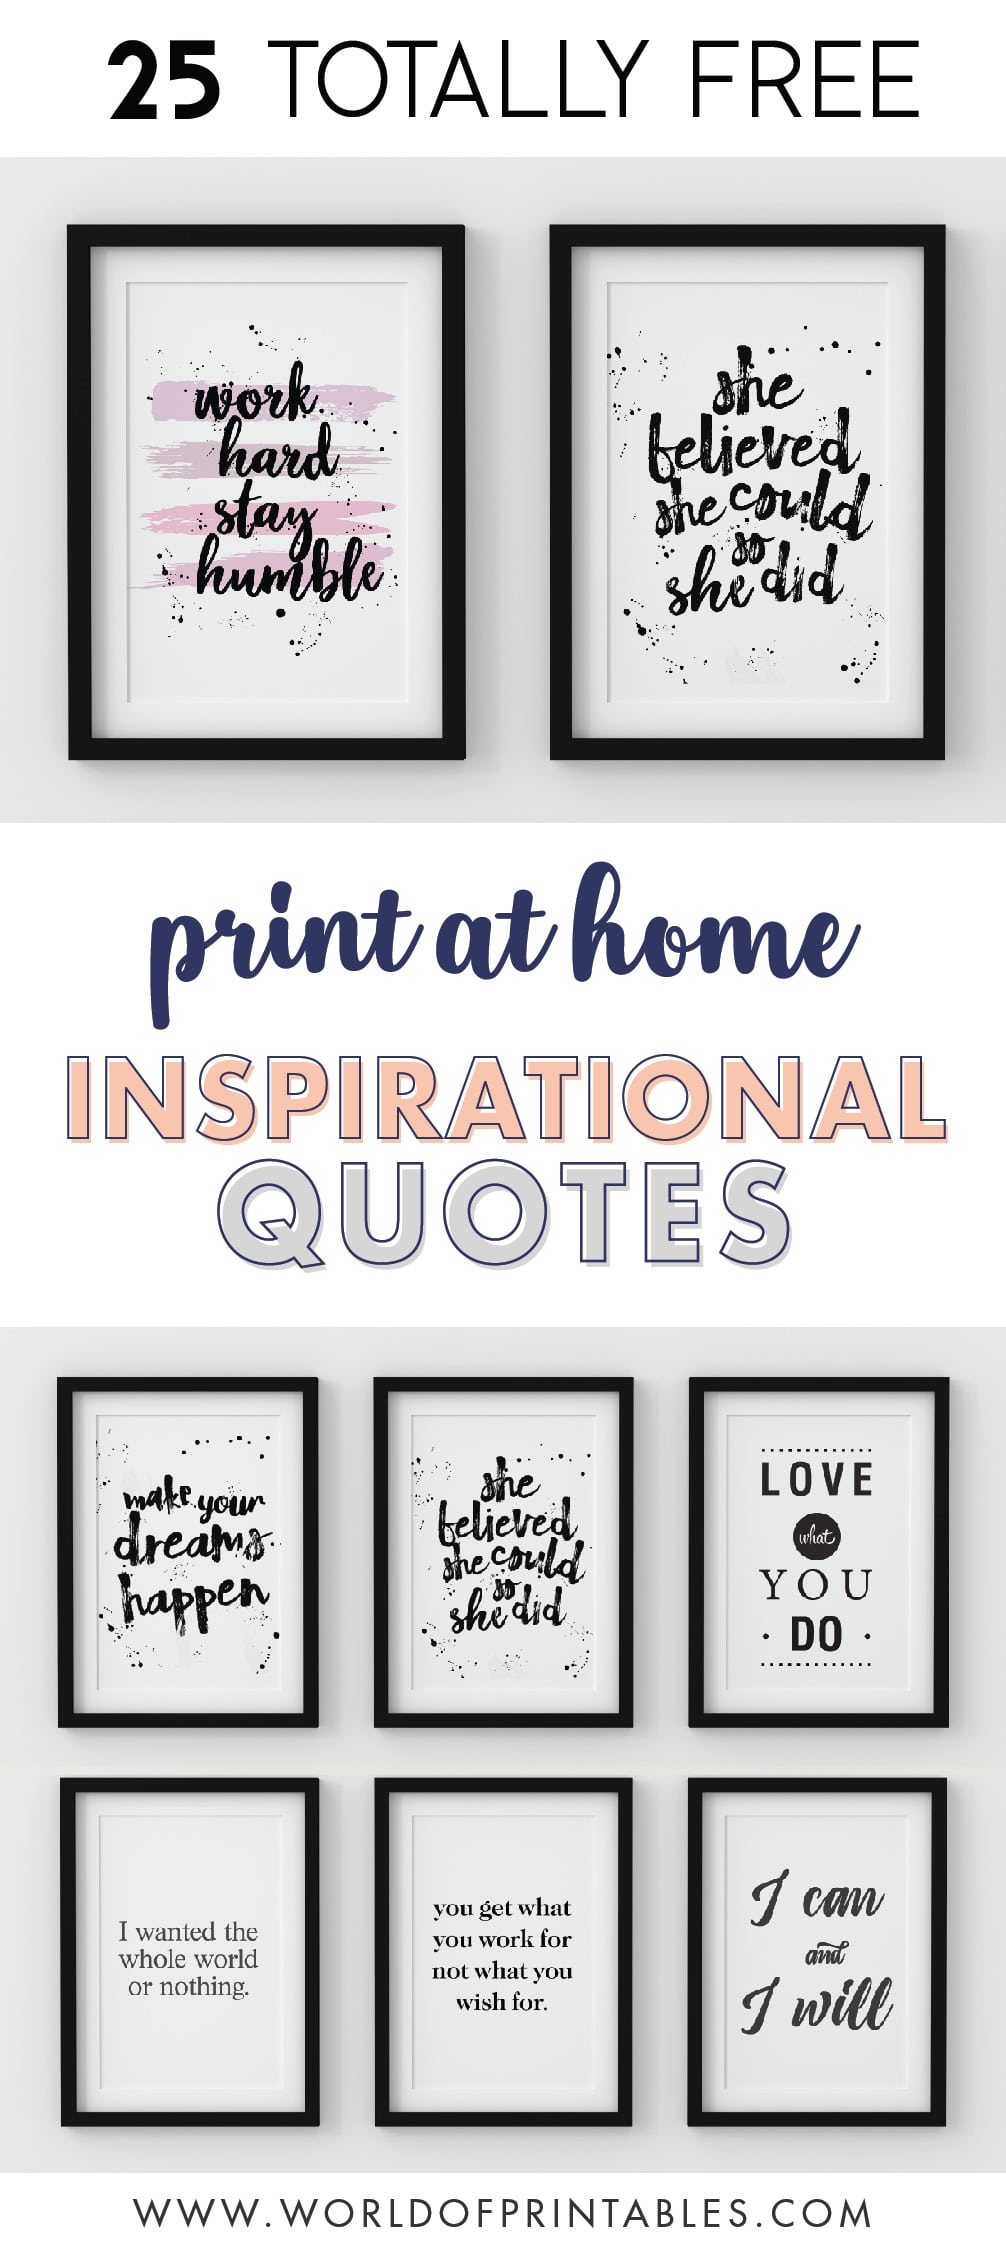 25-Free-Inspirational-Quotes-For-Wall-Art-Prints-home-decor-ideas